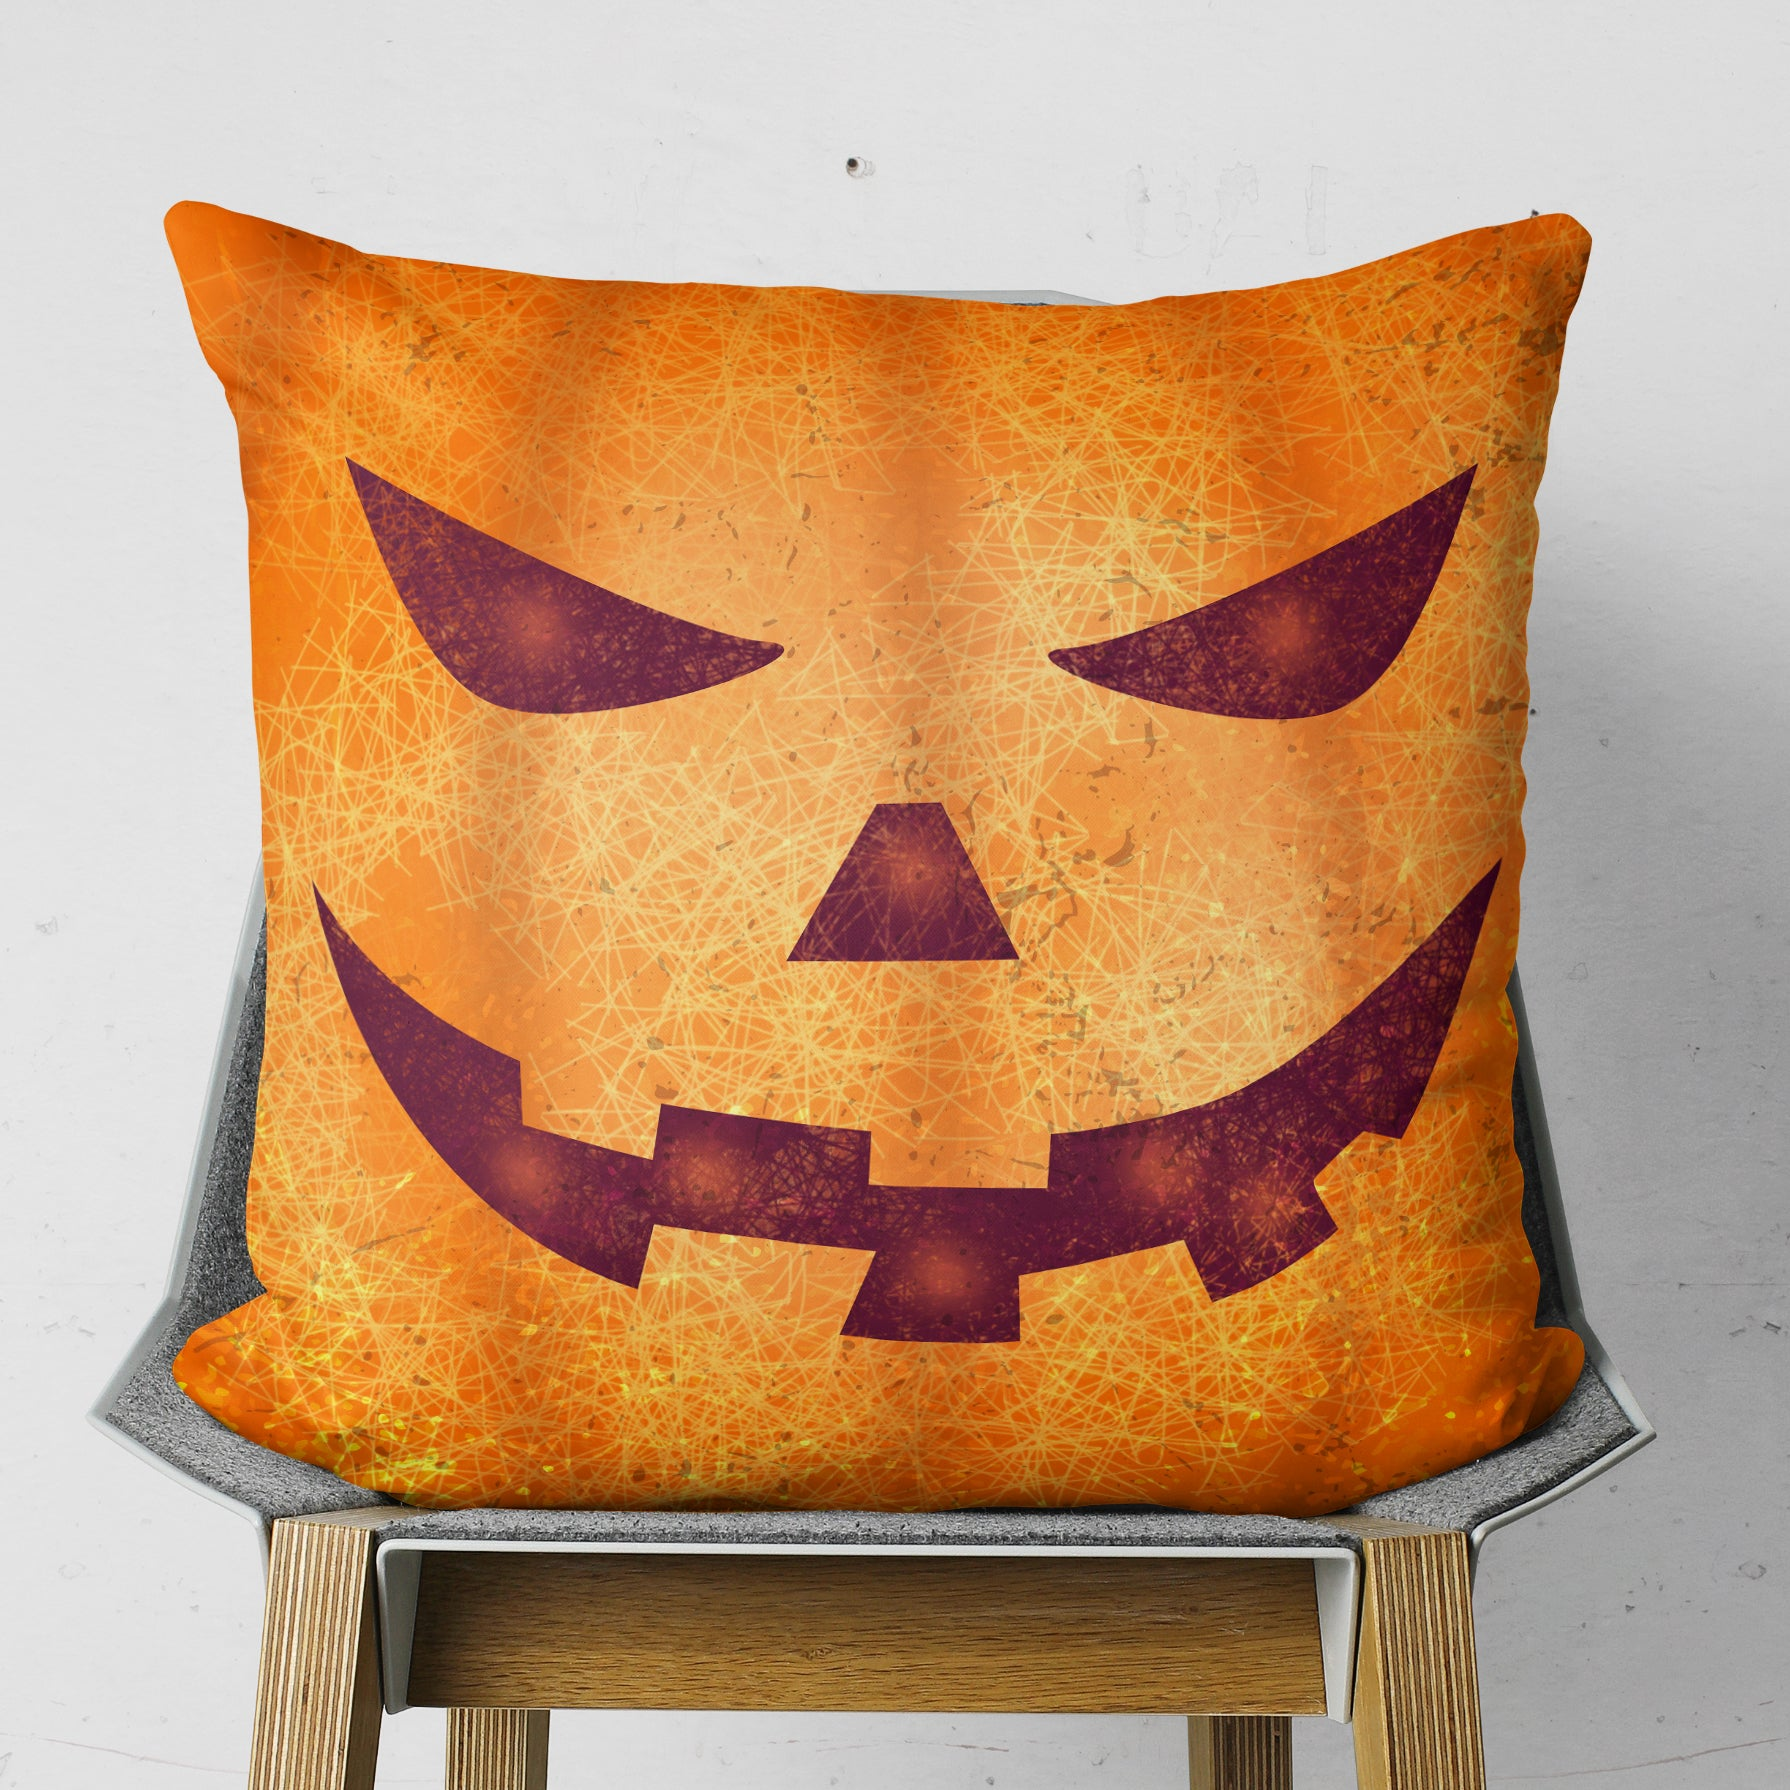 Pumpkin Halloween Pillow - Orange Season Cushion for Kids | Brandless Artist